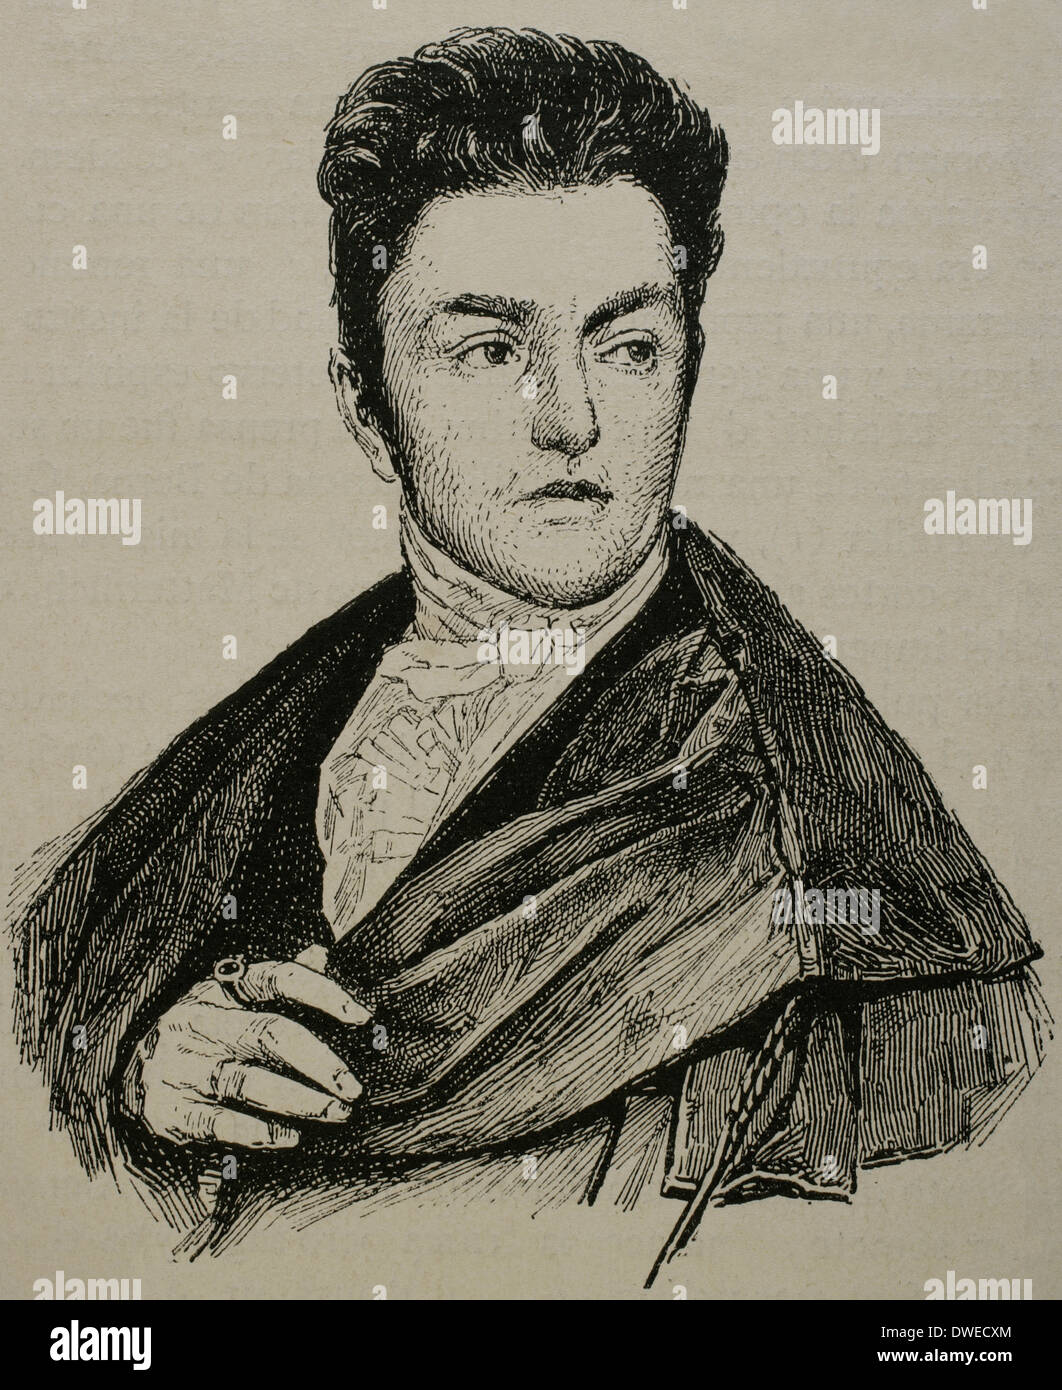 Maximilian Emanuel von Lerchenfeld (1778-1843). Germany. Engraving by Historia Universal, 1883. - Stock Image